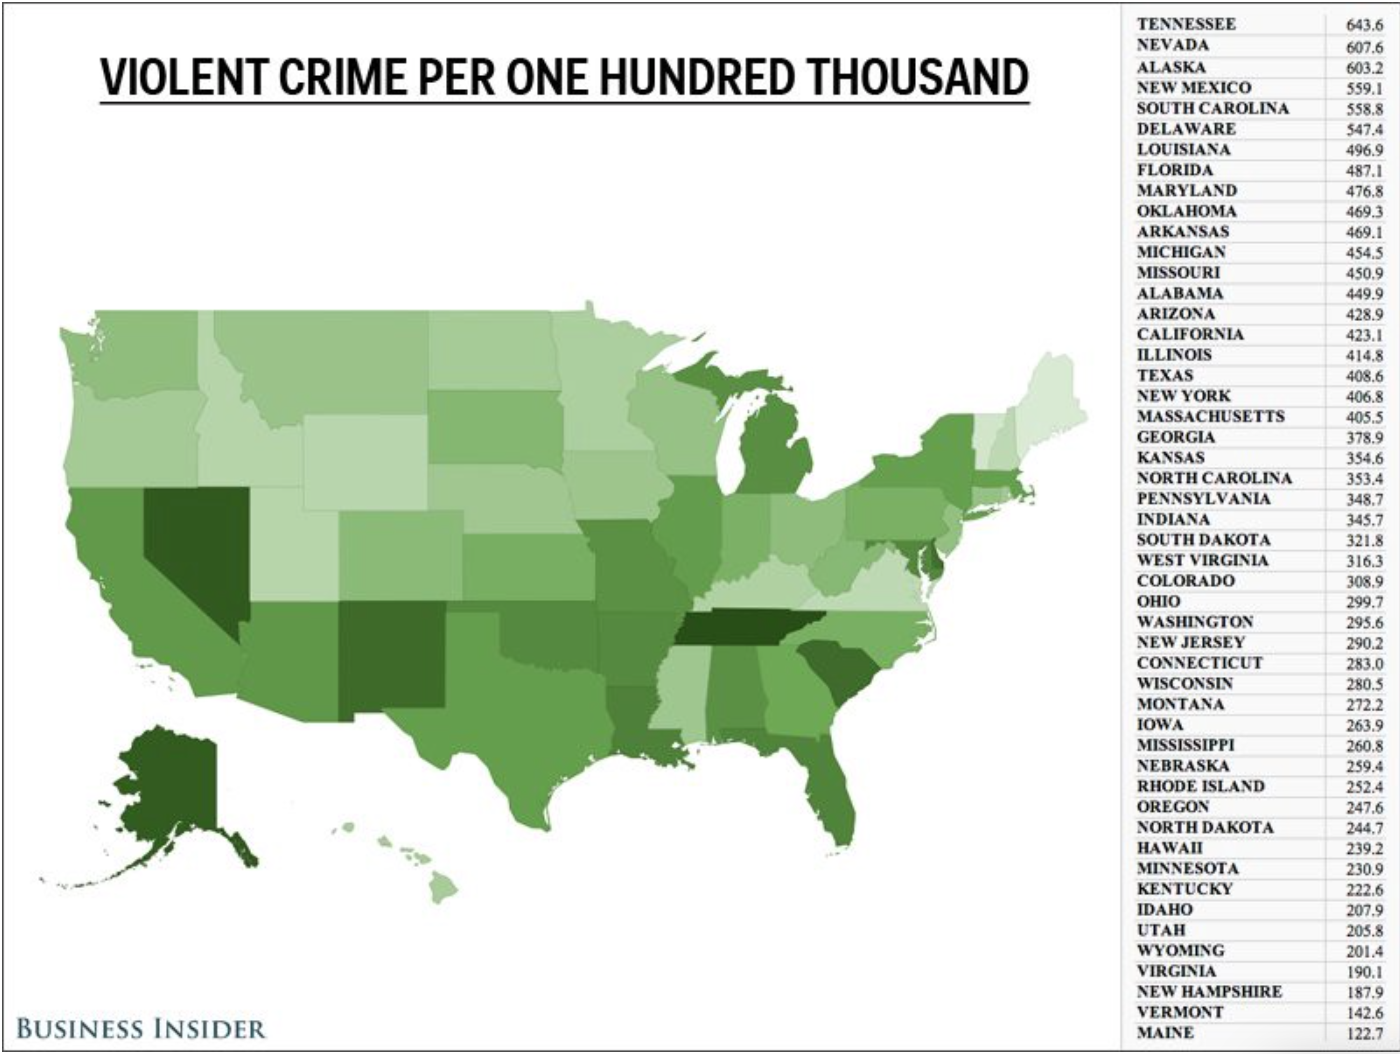 FBI Uniform Crime Report, 2012.png